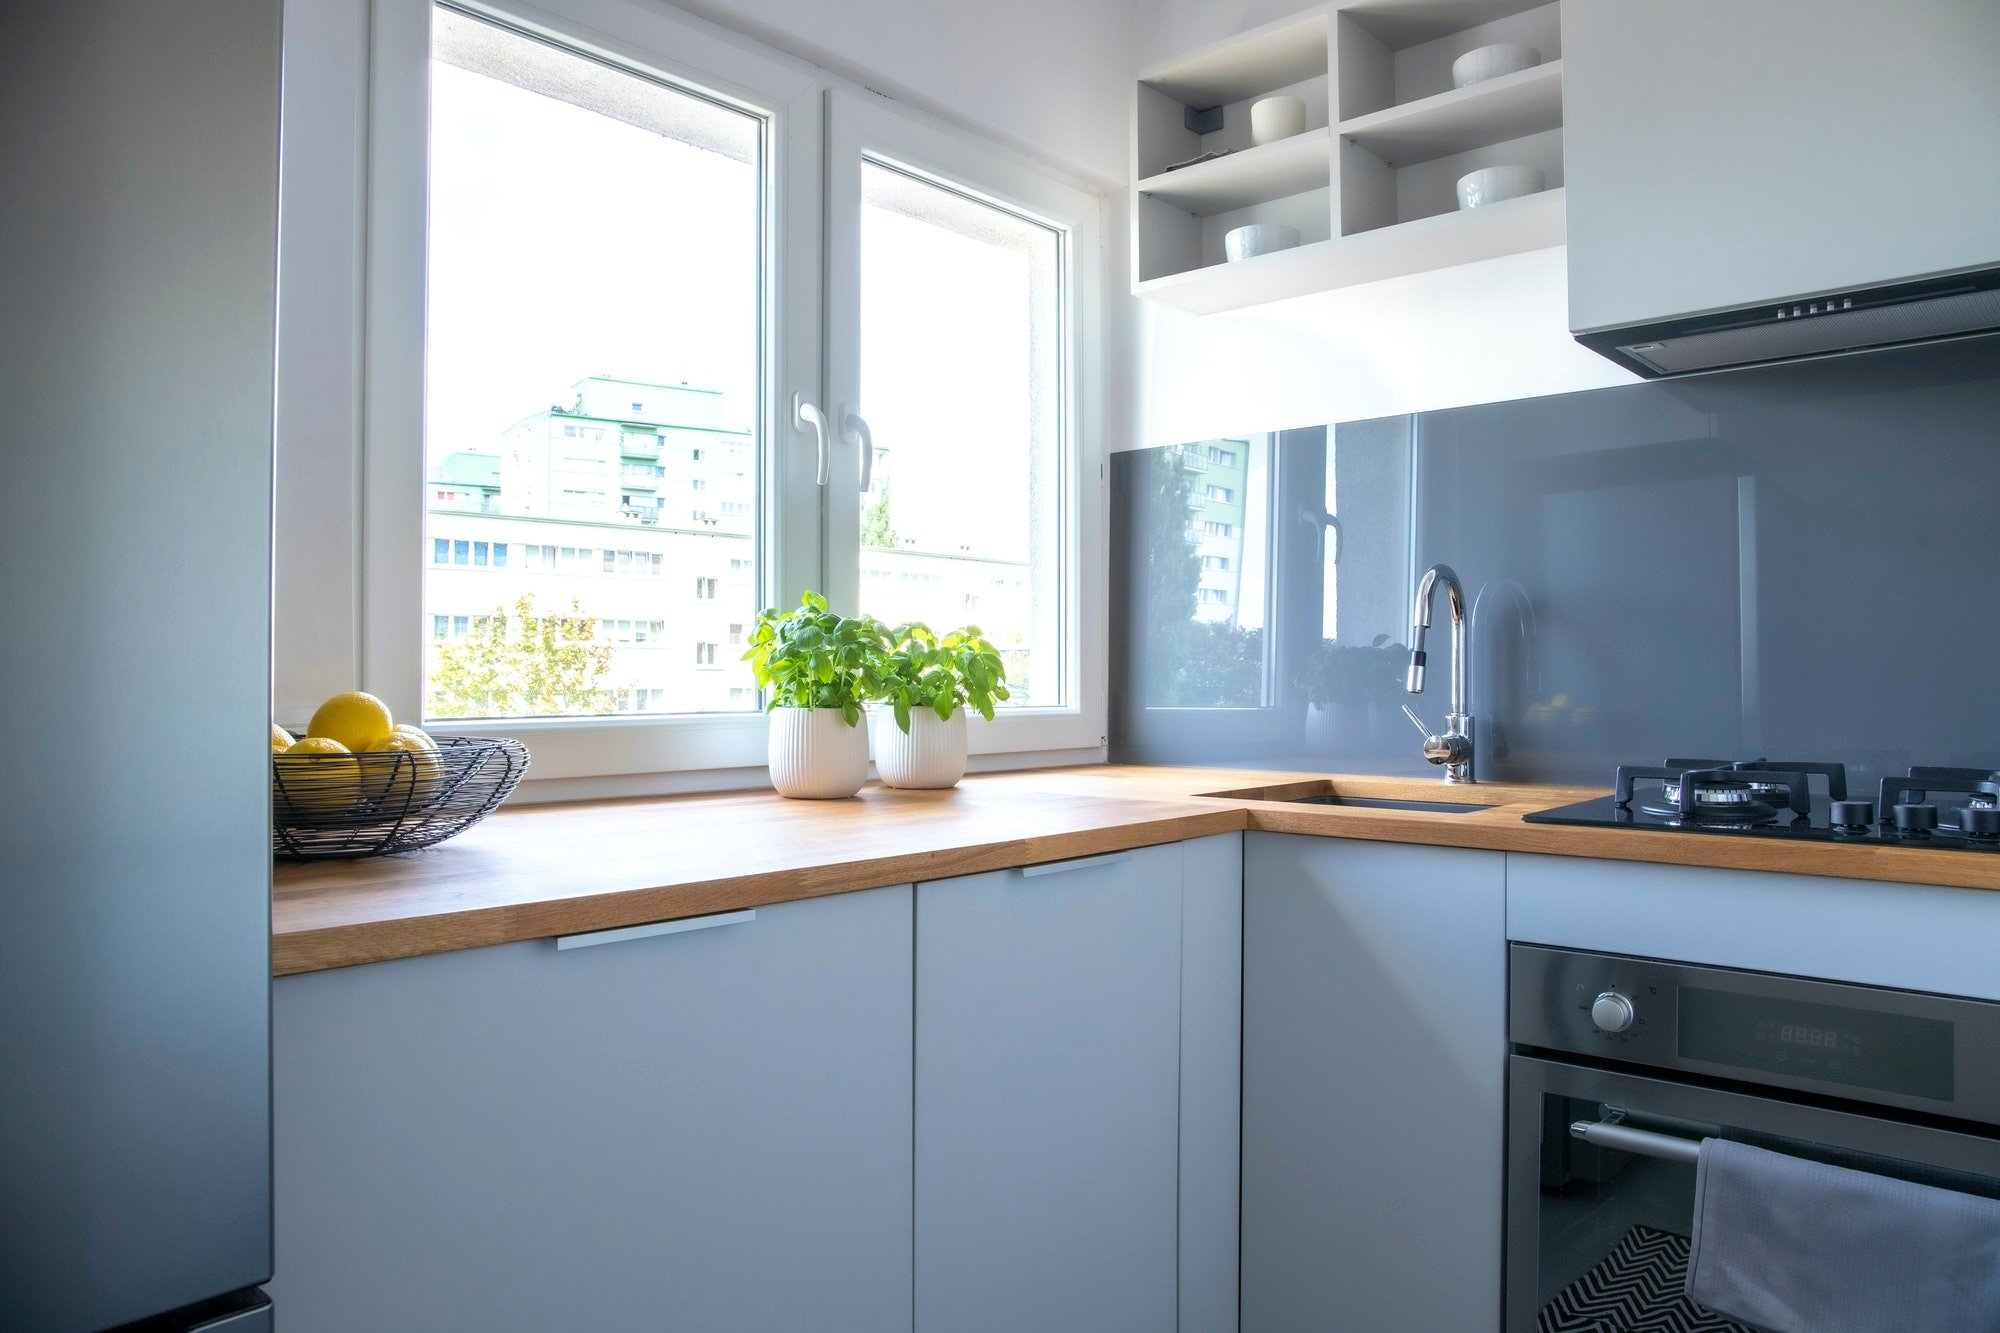 Herbs and lemons on wooden counter of small kitchen with white cupboards